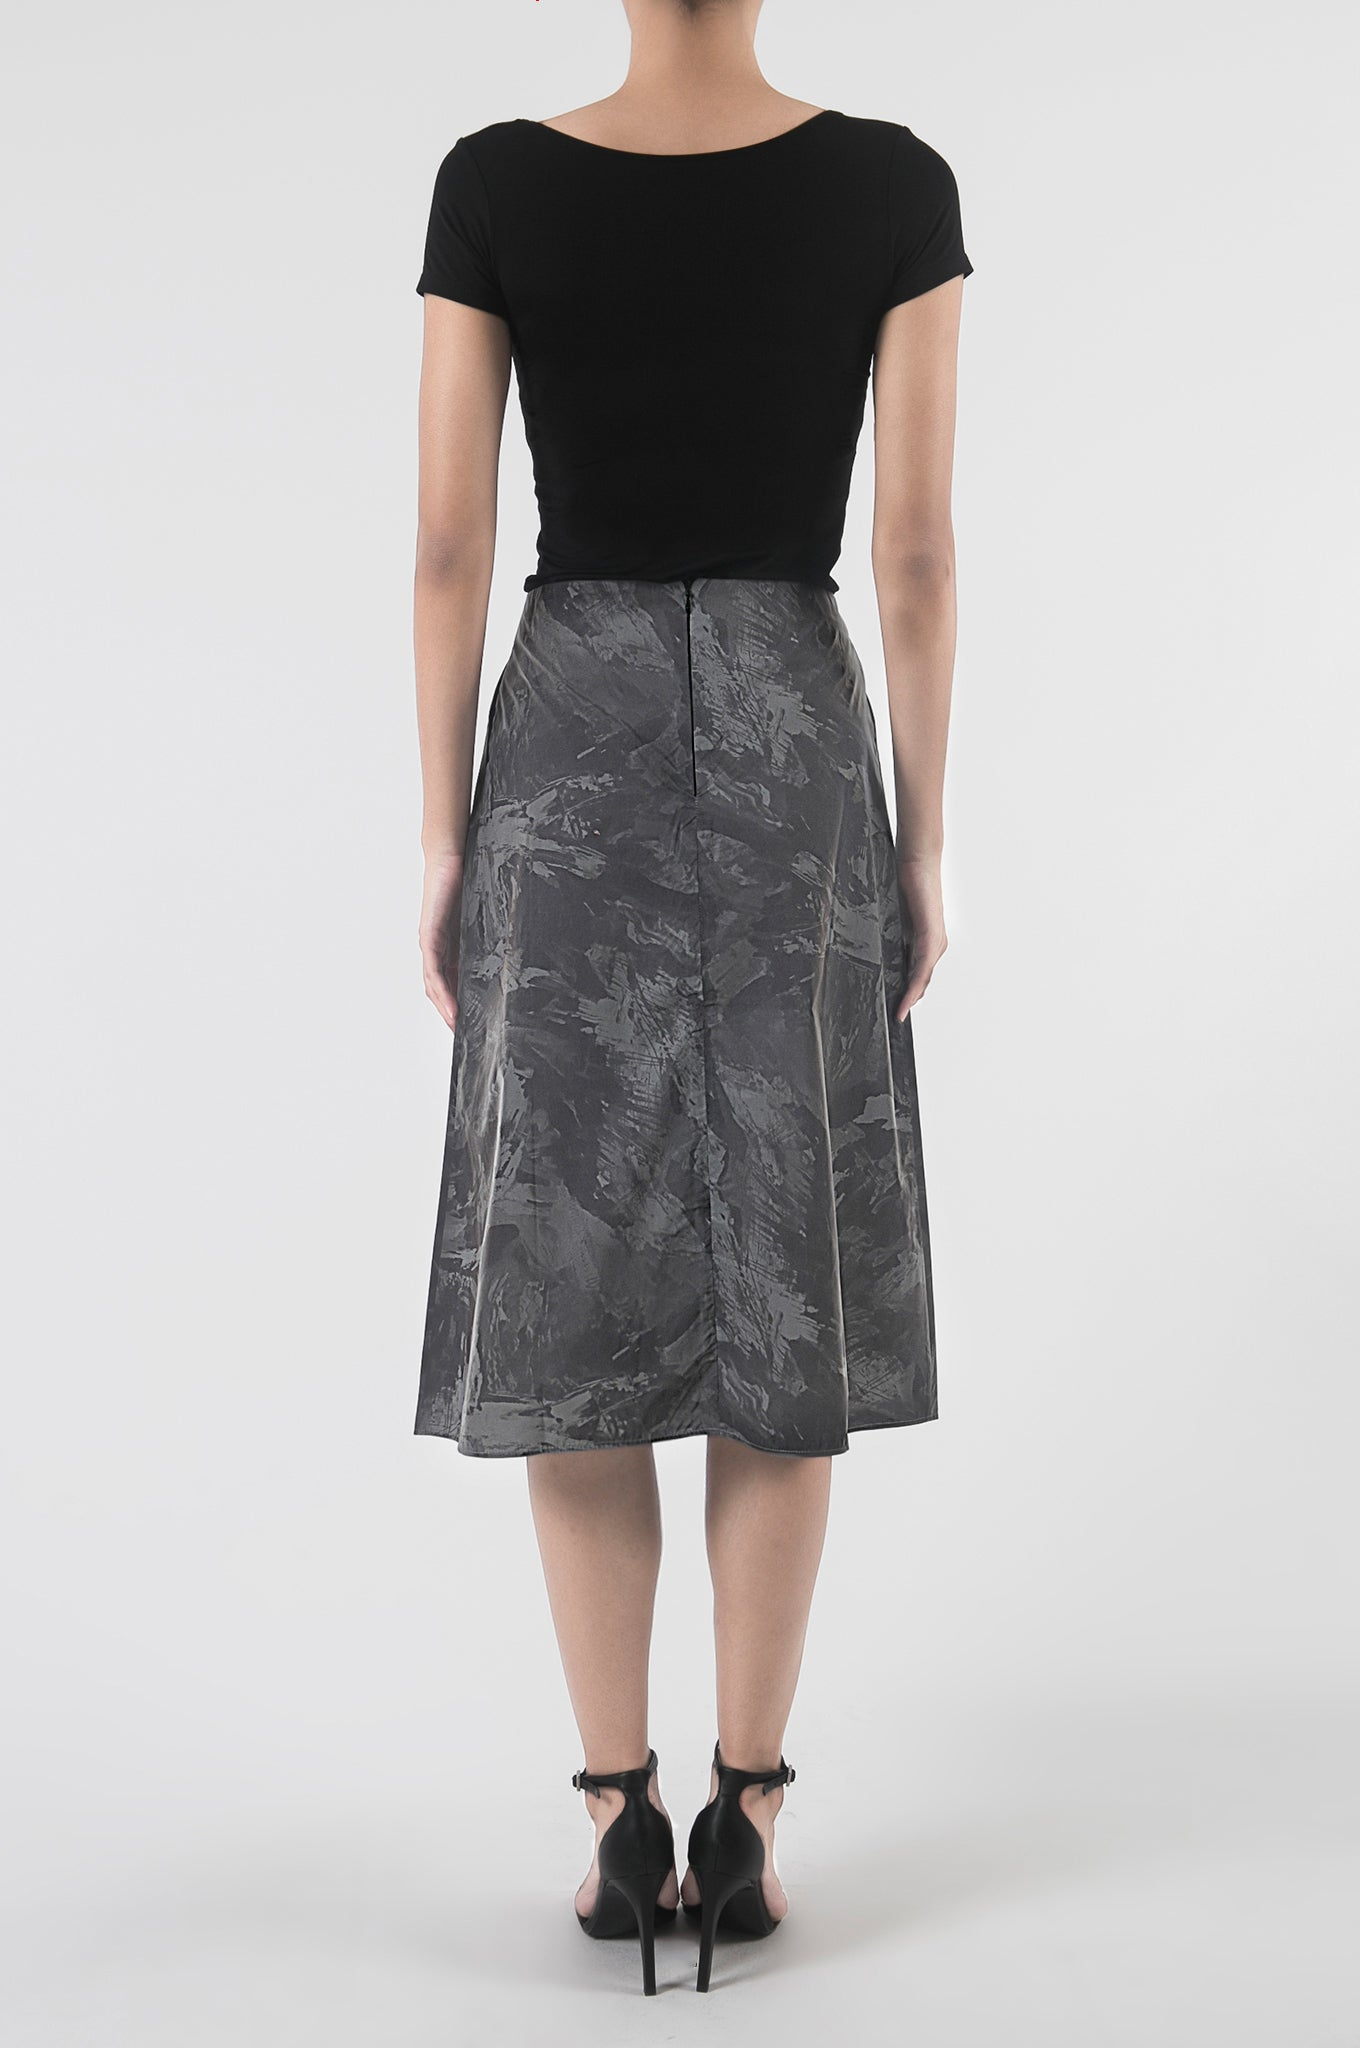 Reflective Abstract Print Skirt